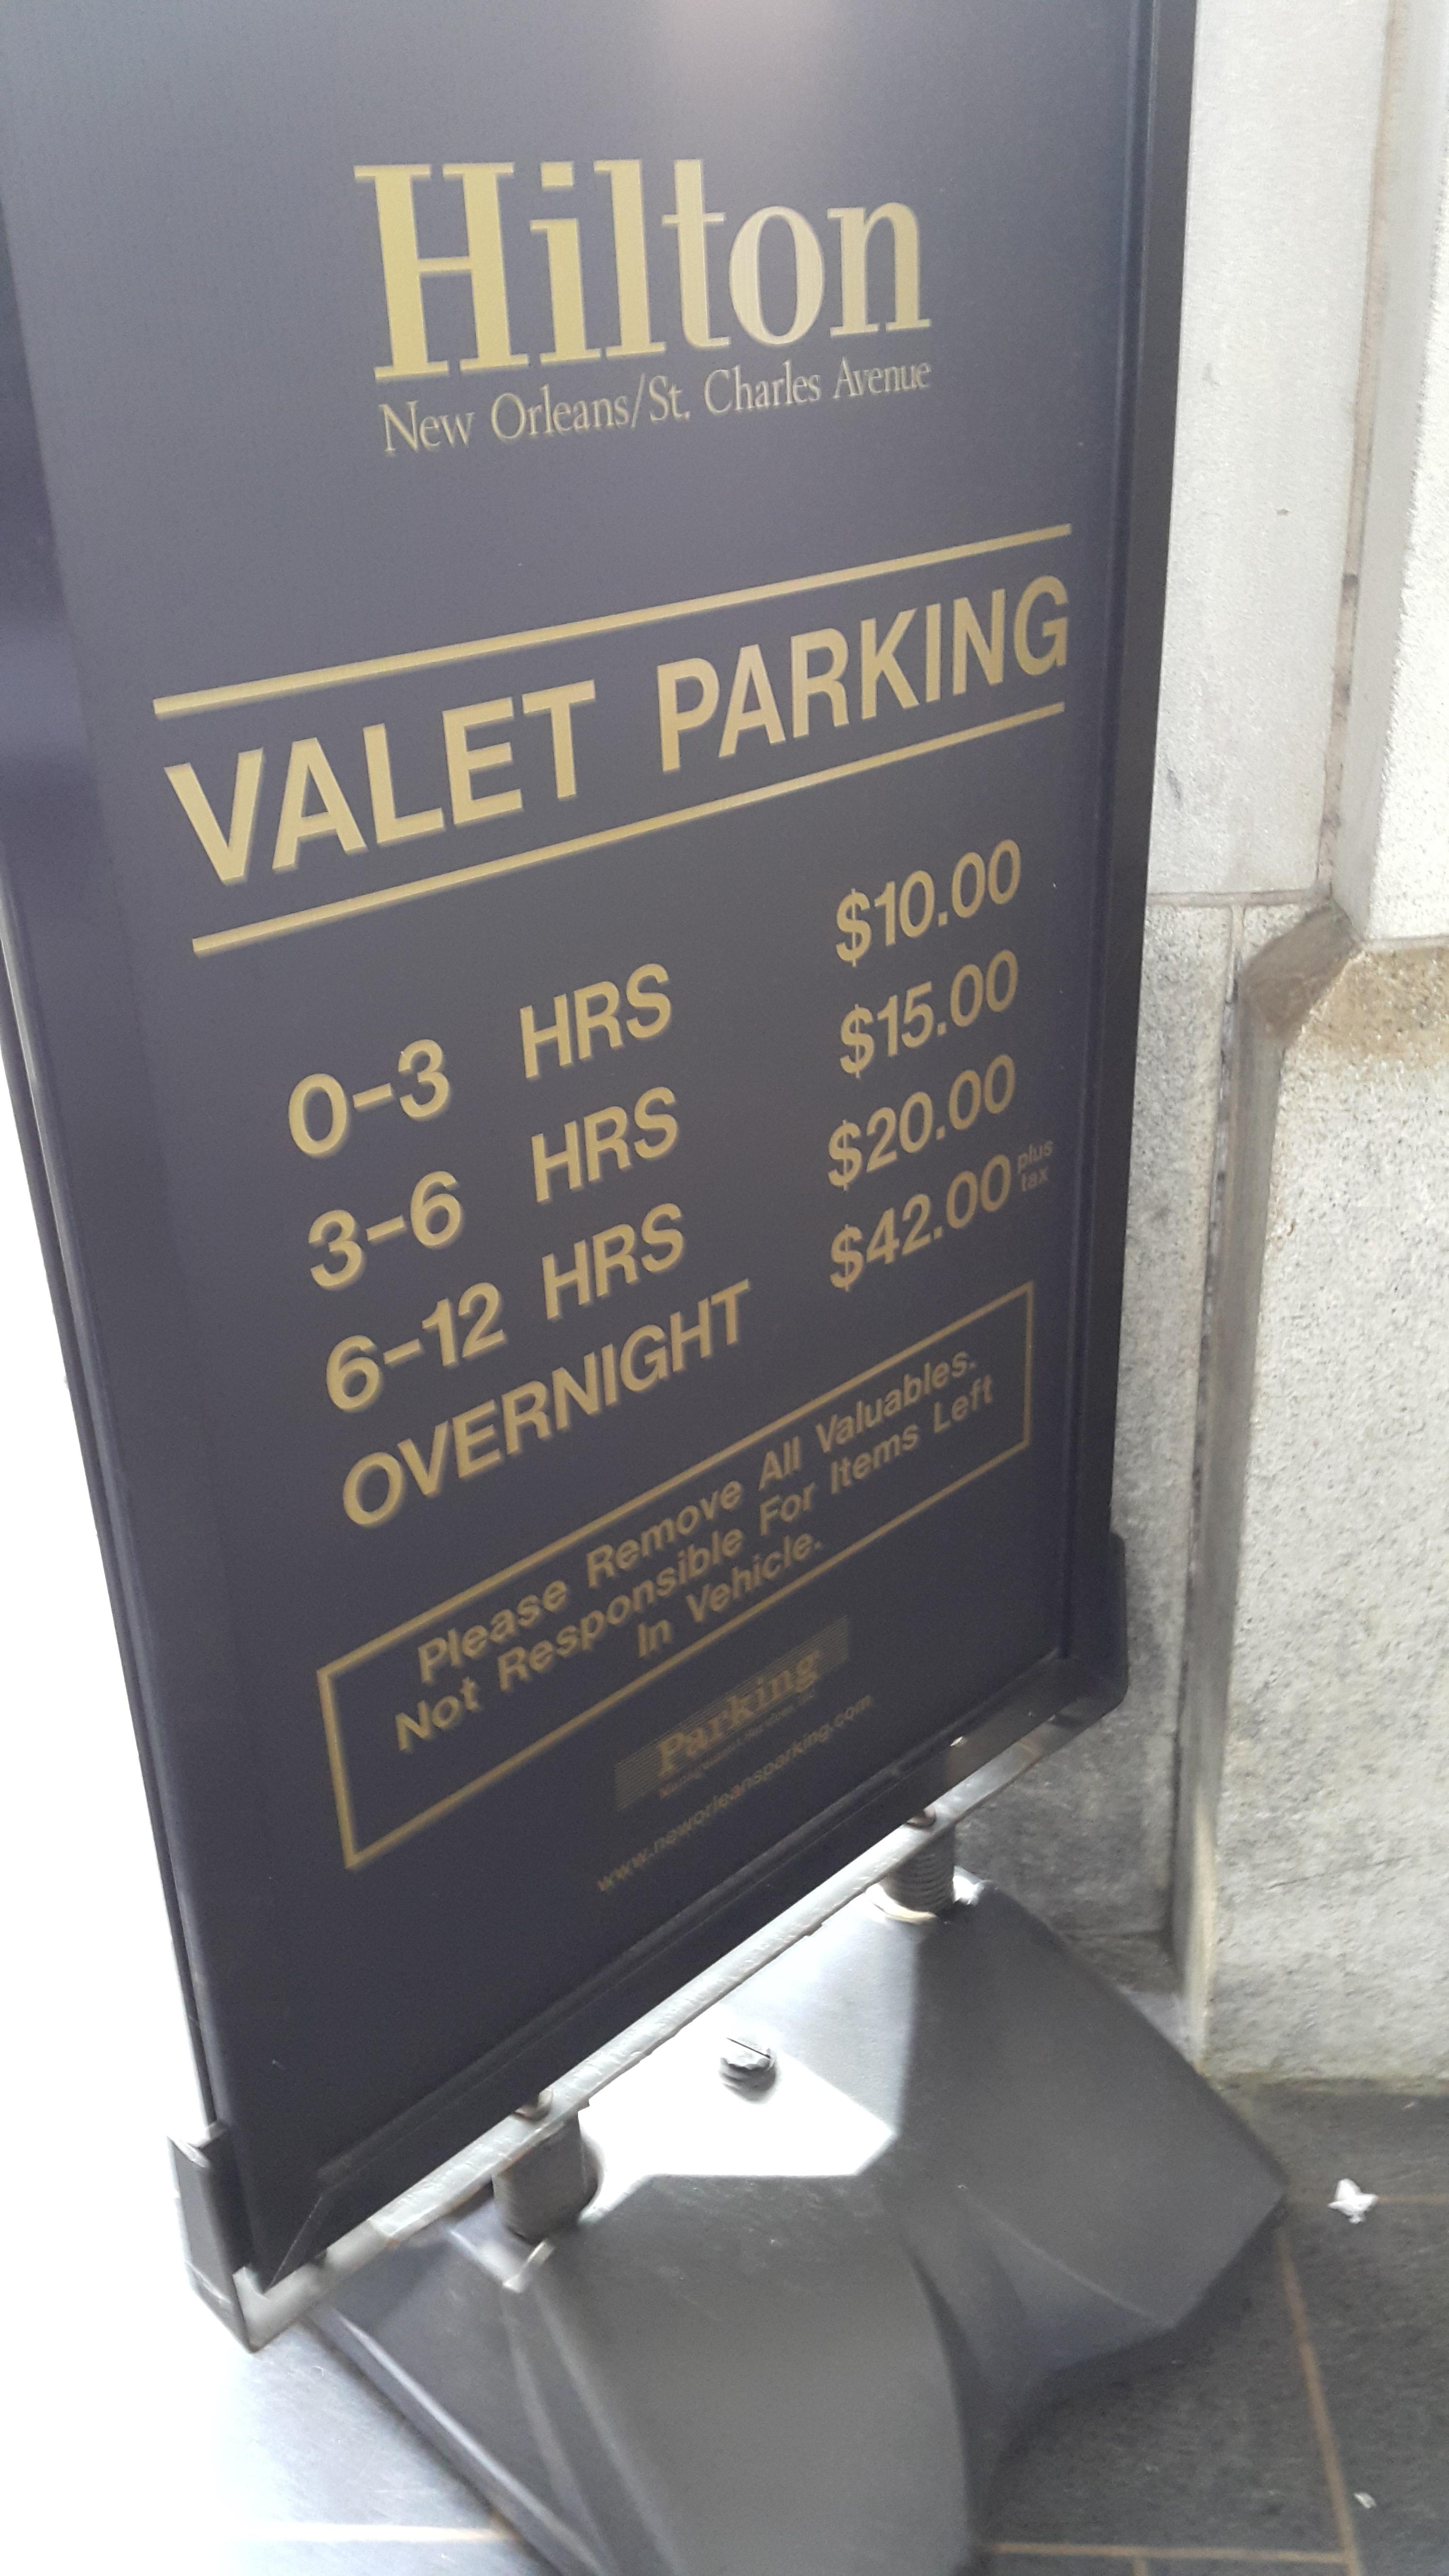 Valet charge is per night, not per day